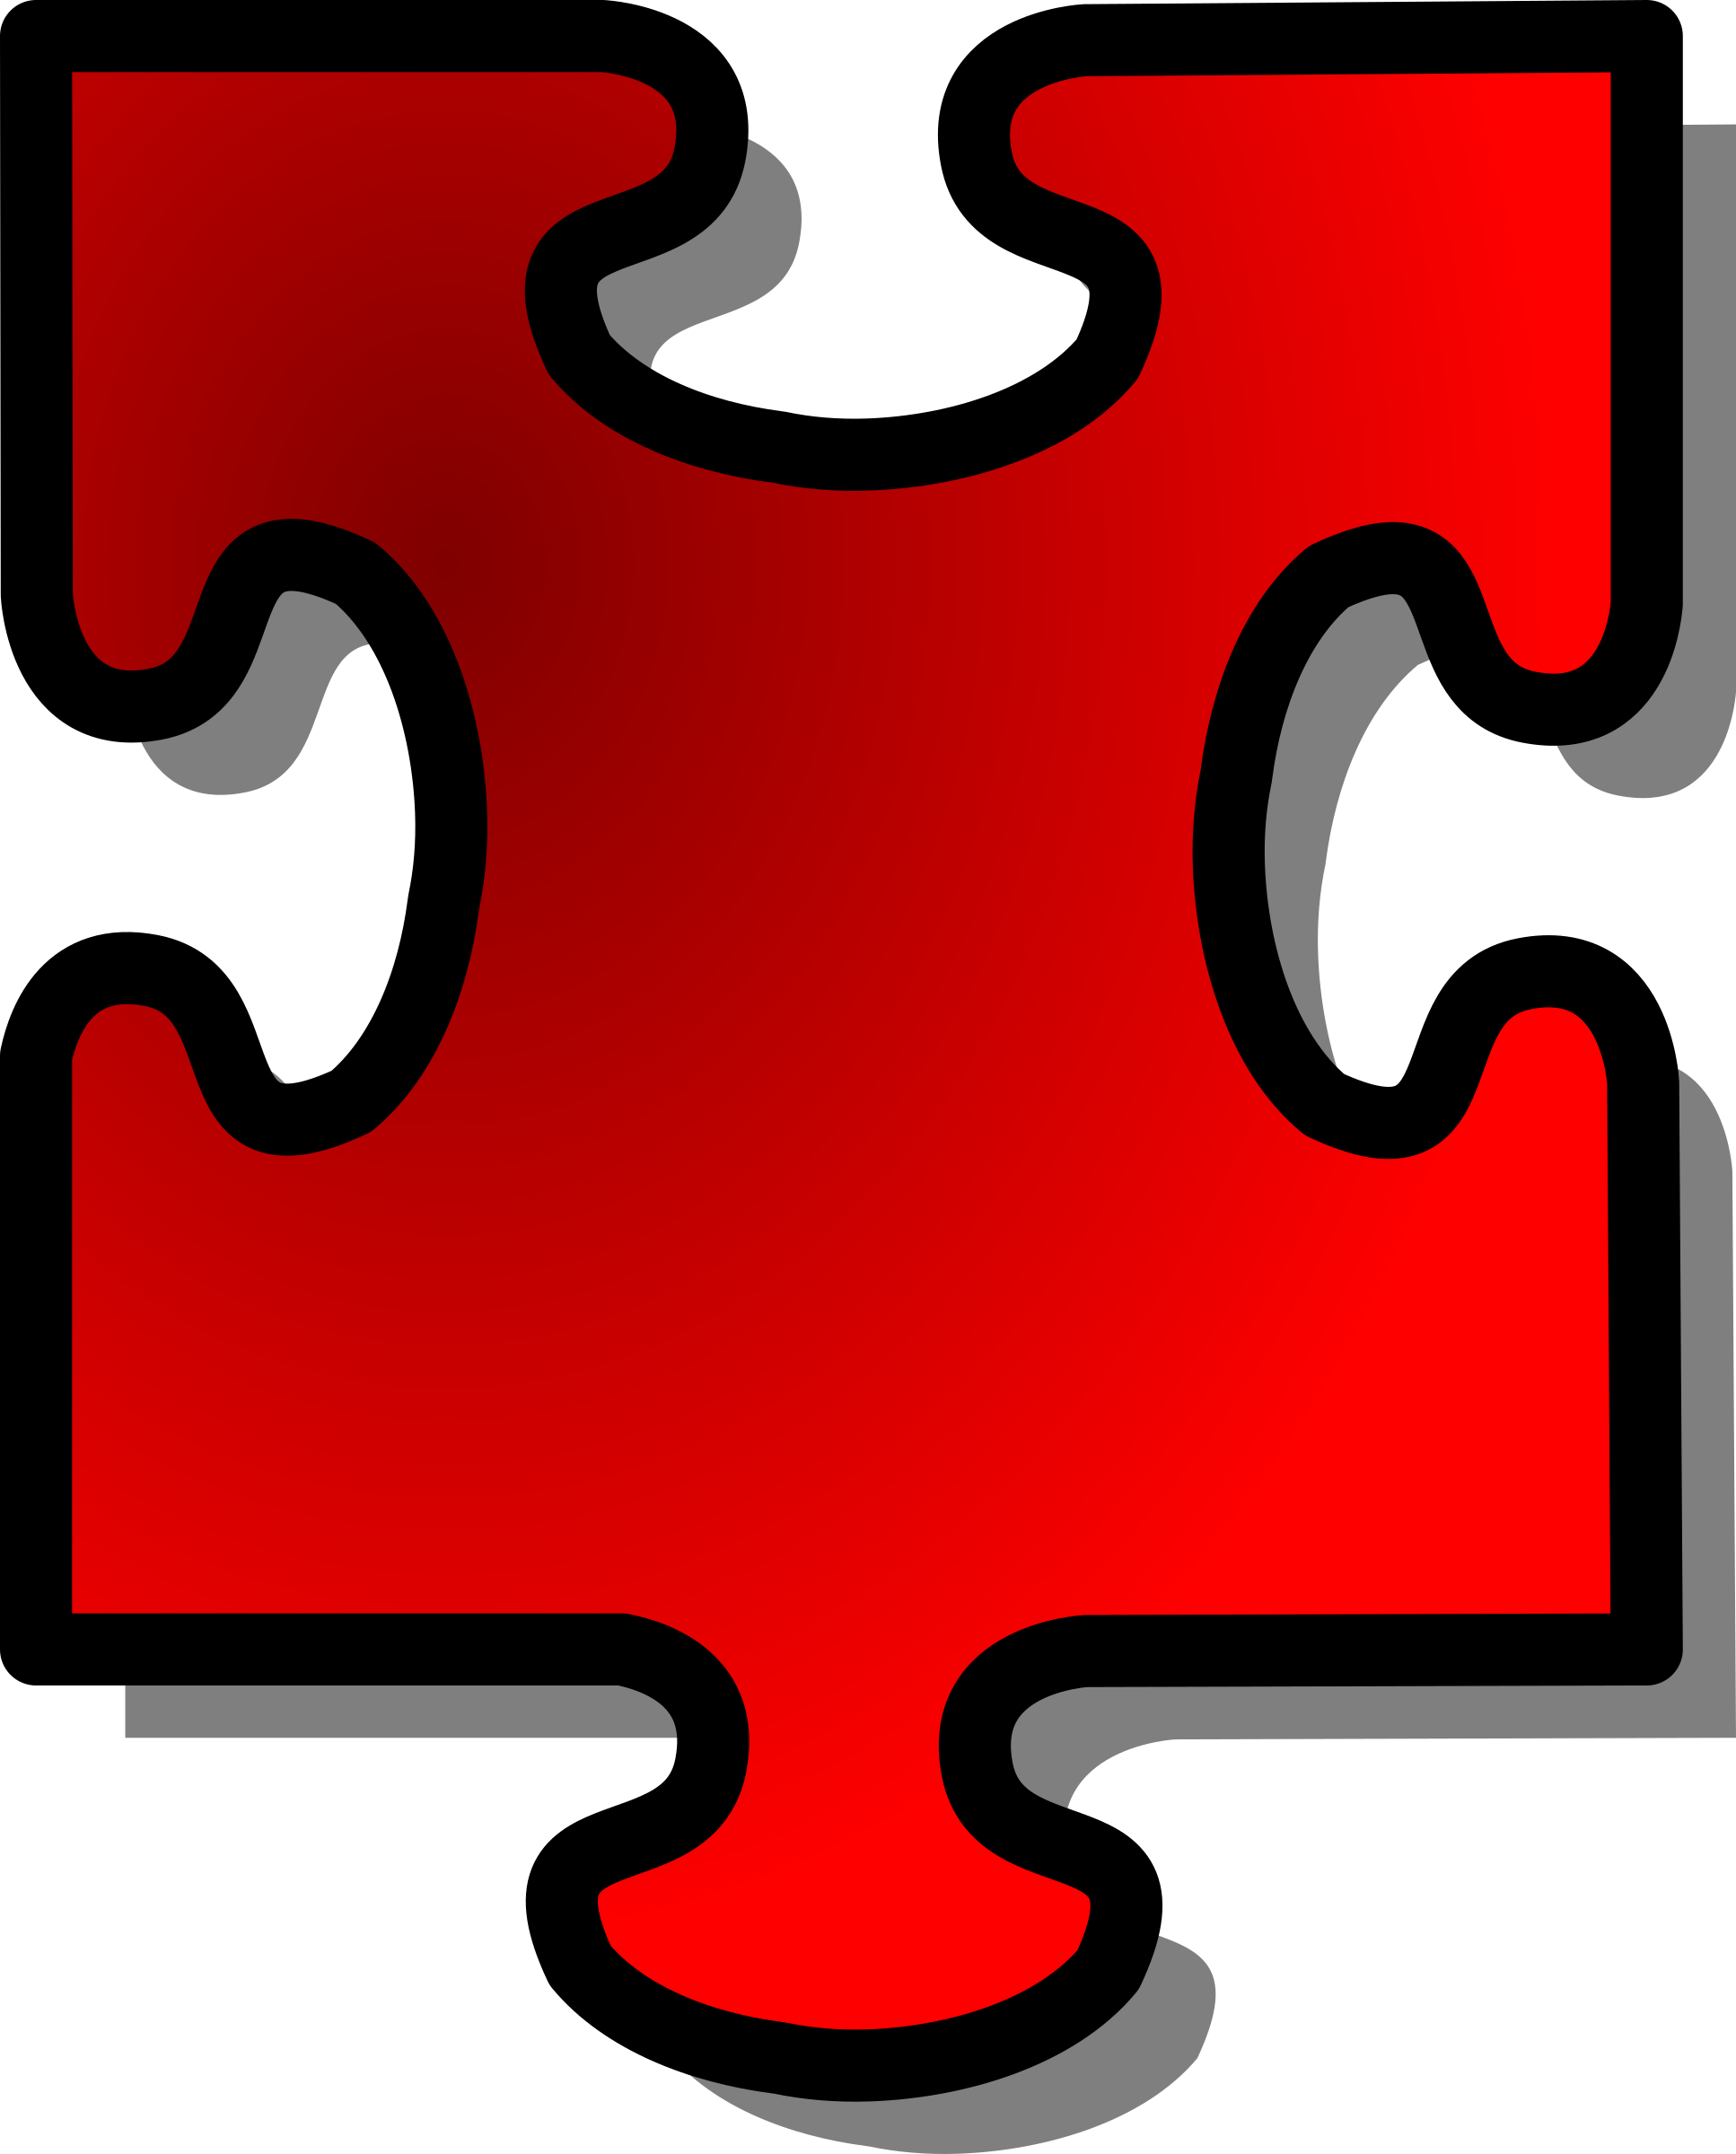 Red Jigsaw piece 15 by nicubunu